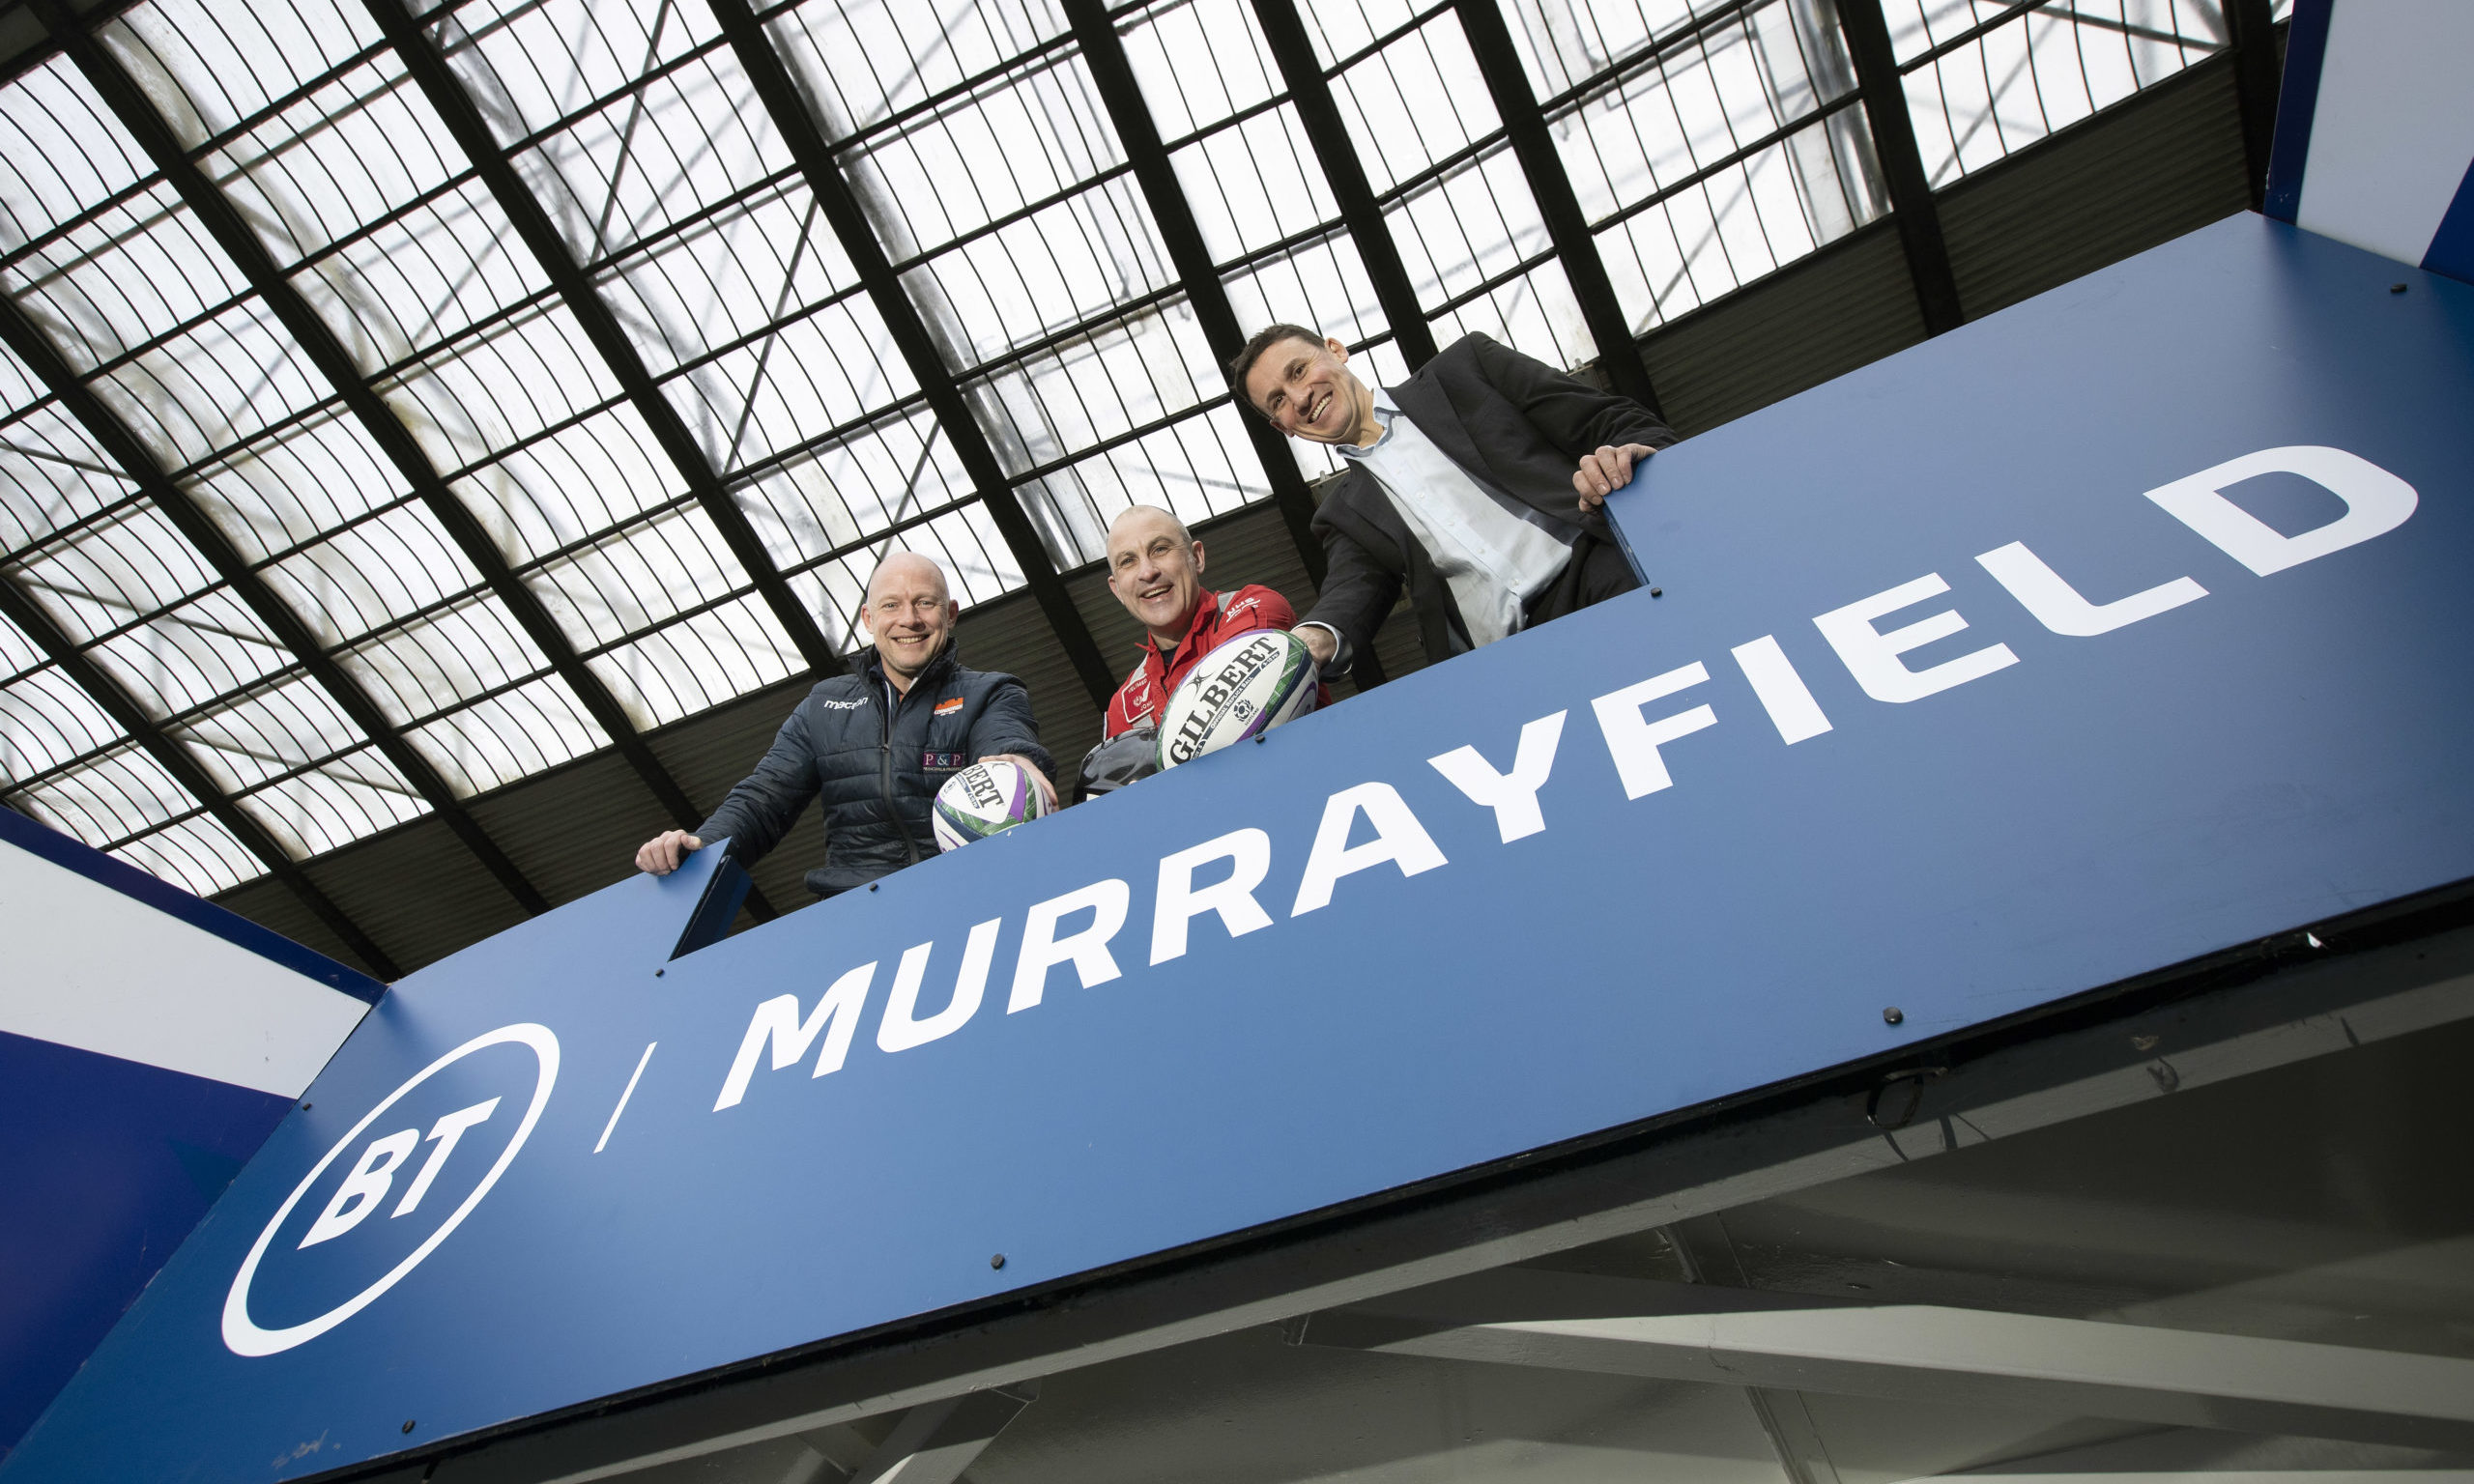 Scottish Rugby heroes Duncan Hodge (left) and Craig Joiner (right) and SCAA Lead Paramedic John Prichard (centre) are backing SCAA Superhero Charity Abseil at Murrayfield.